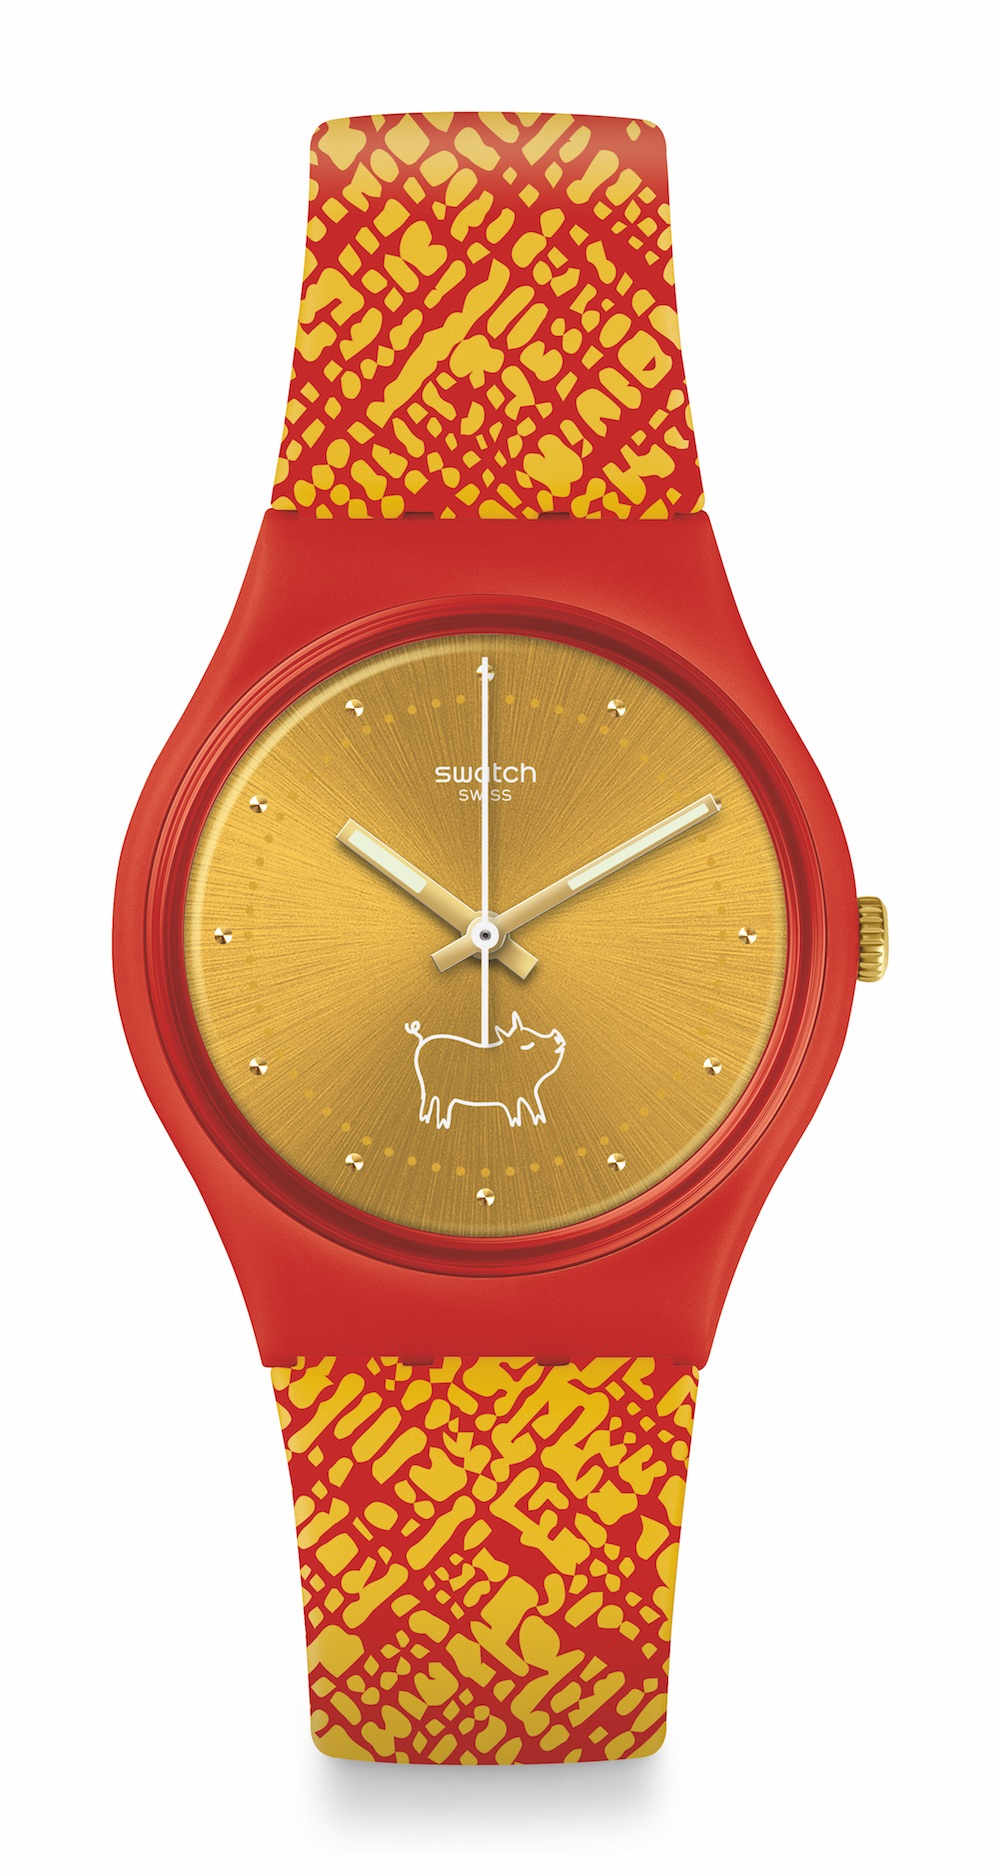 Swatch Gem of New Year, $125